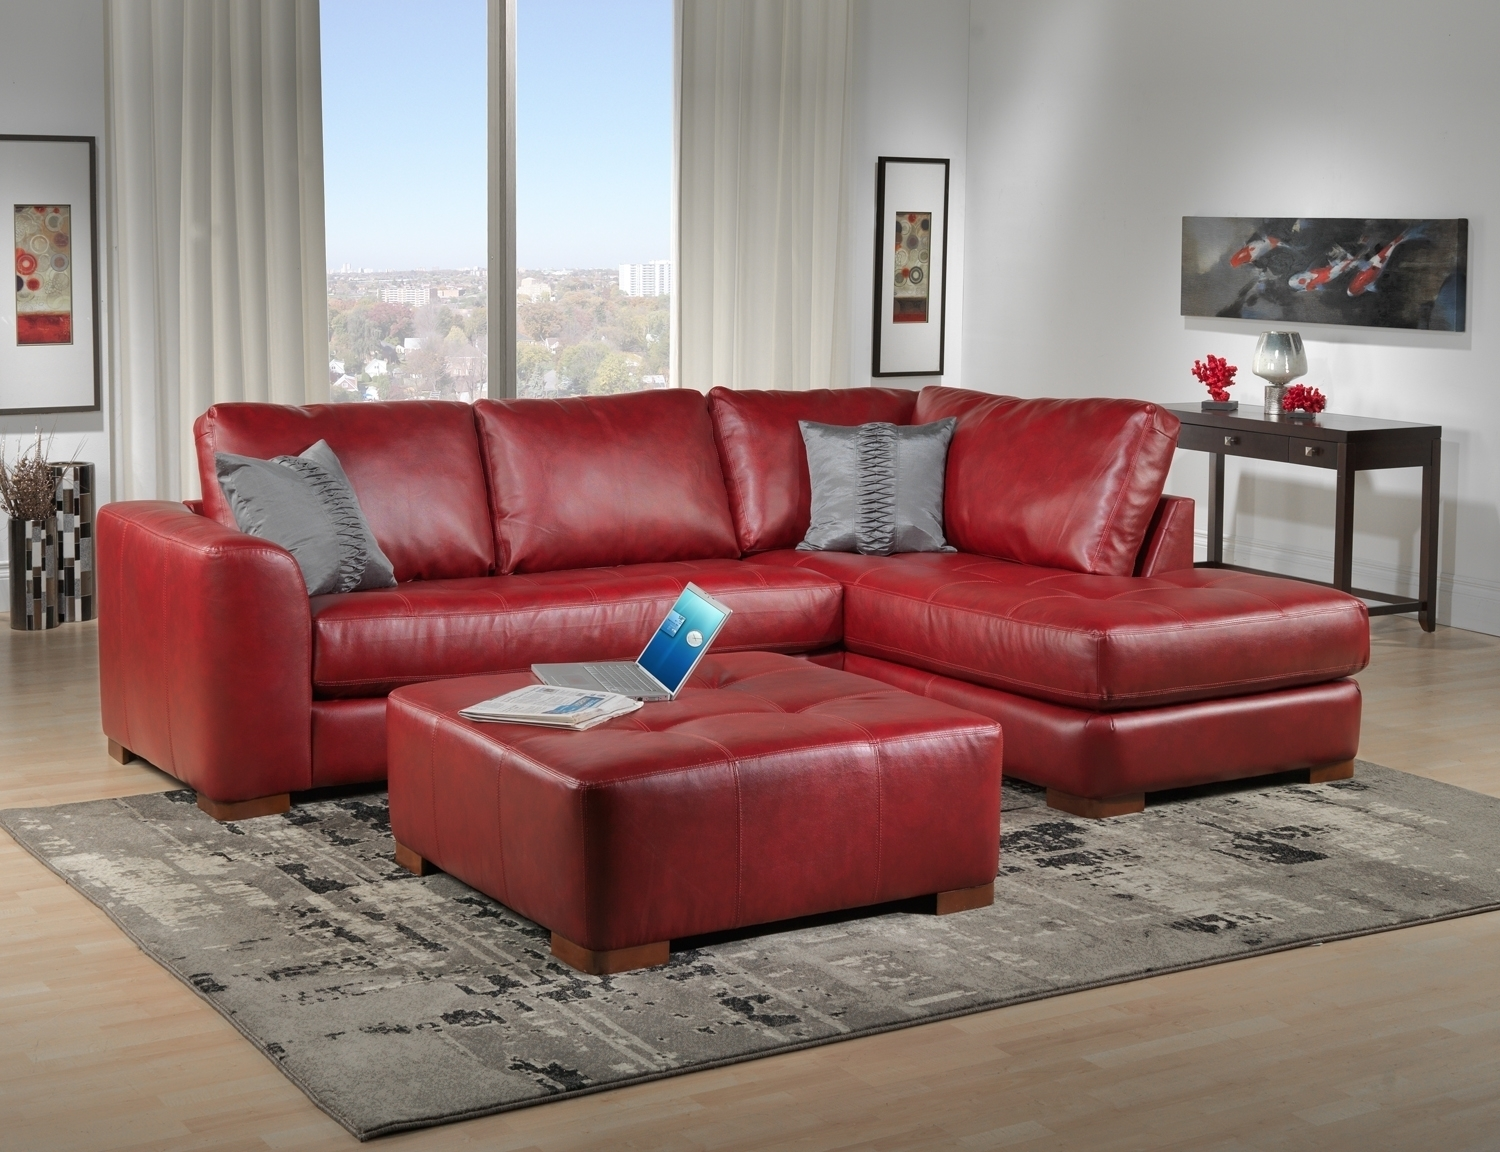 Decorating Ideas Living Room Red Leather Sofa | Living Room Ideas For Red Leather Couches For Living Room (View 4 of 10)